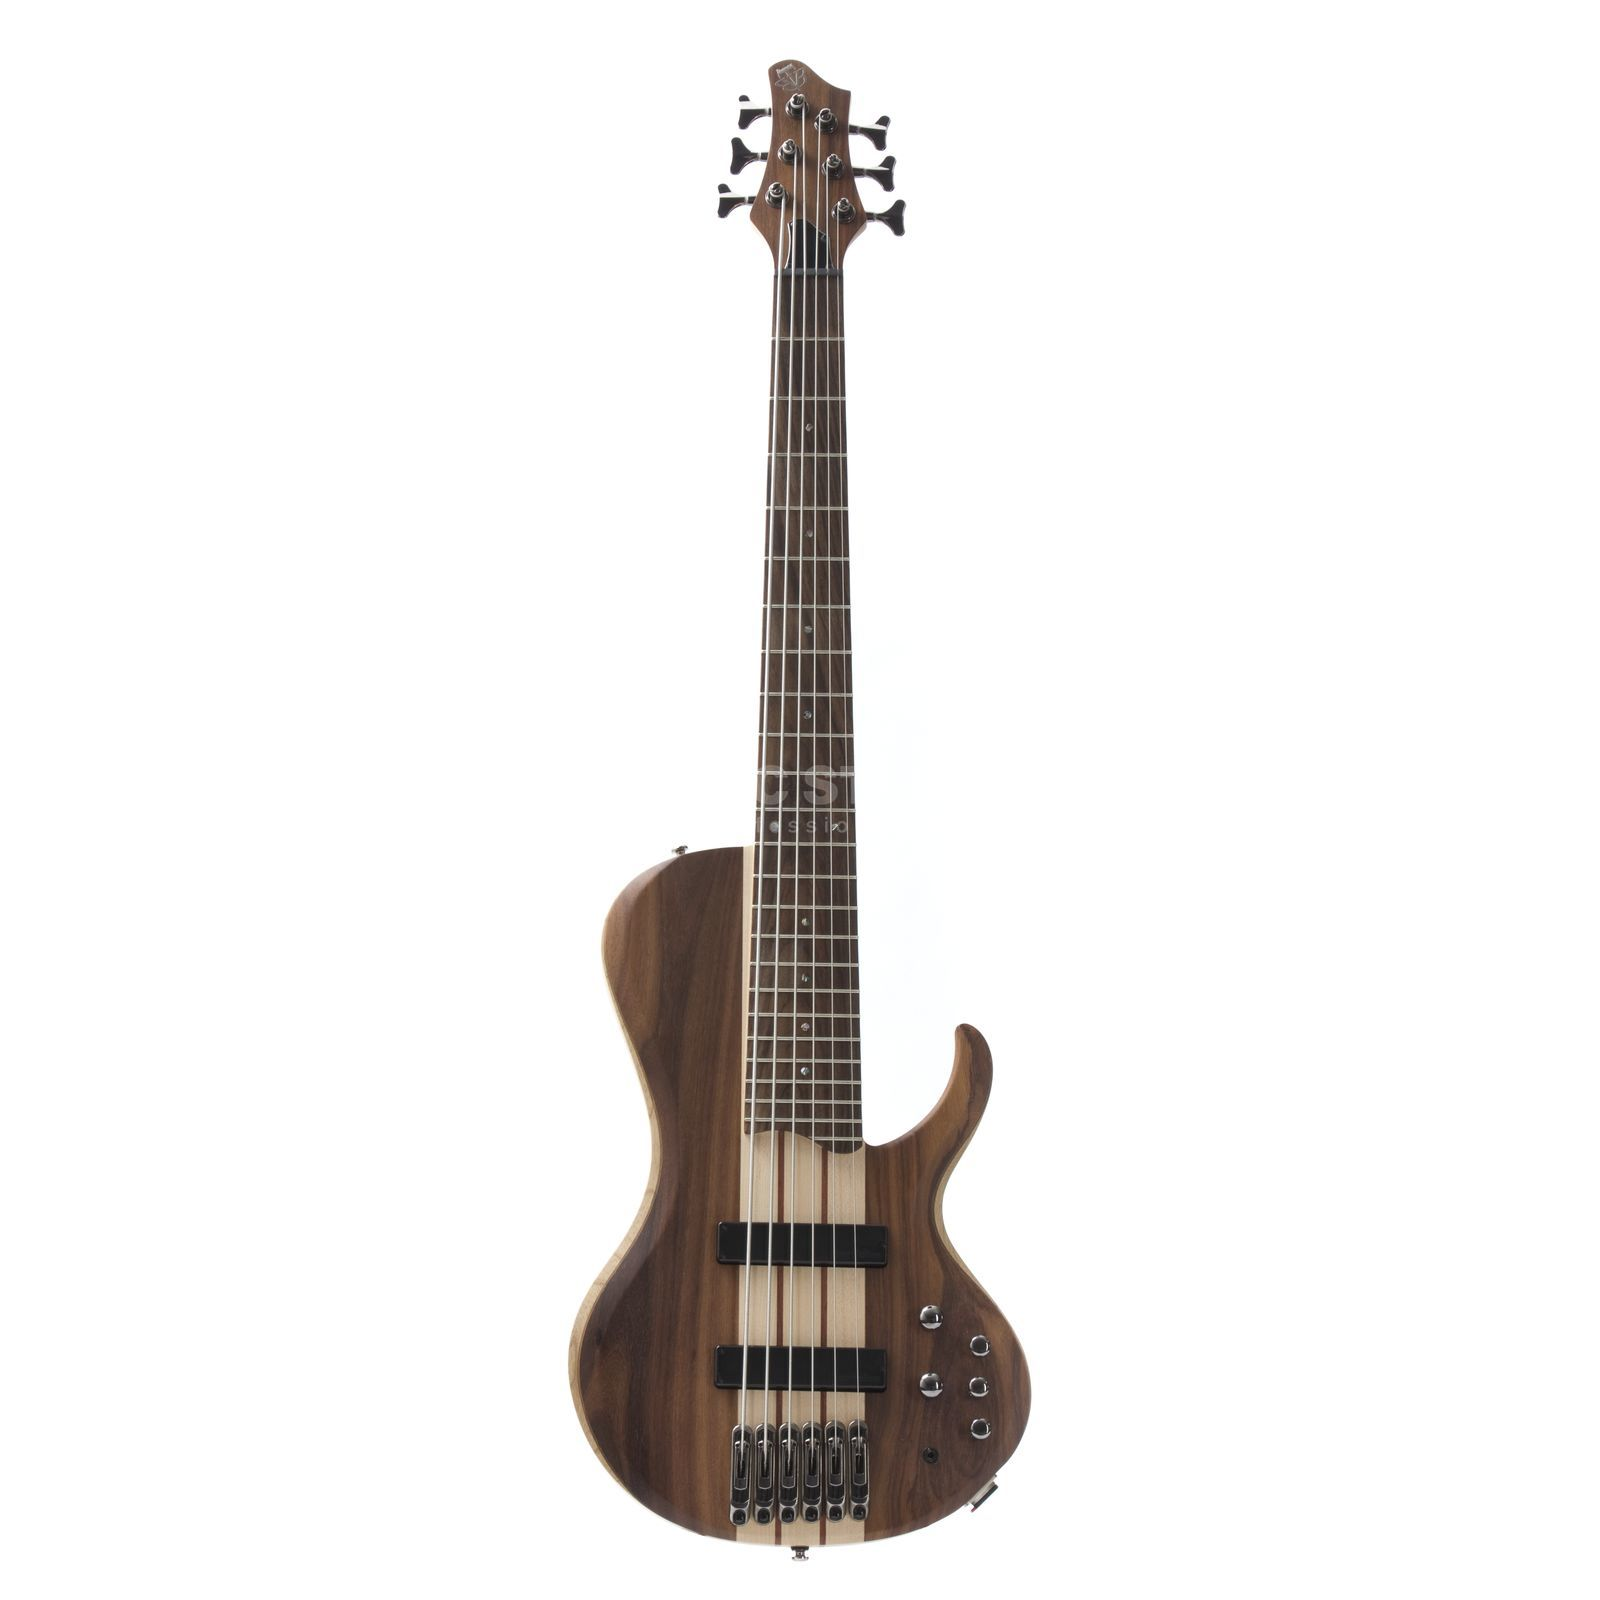 Ibanez BTB 686 SC NTF Natural Flat Product Image